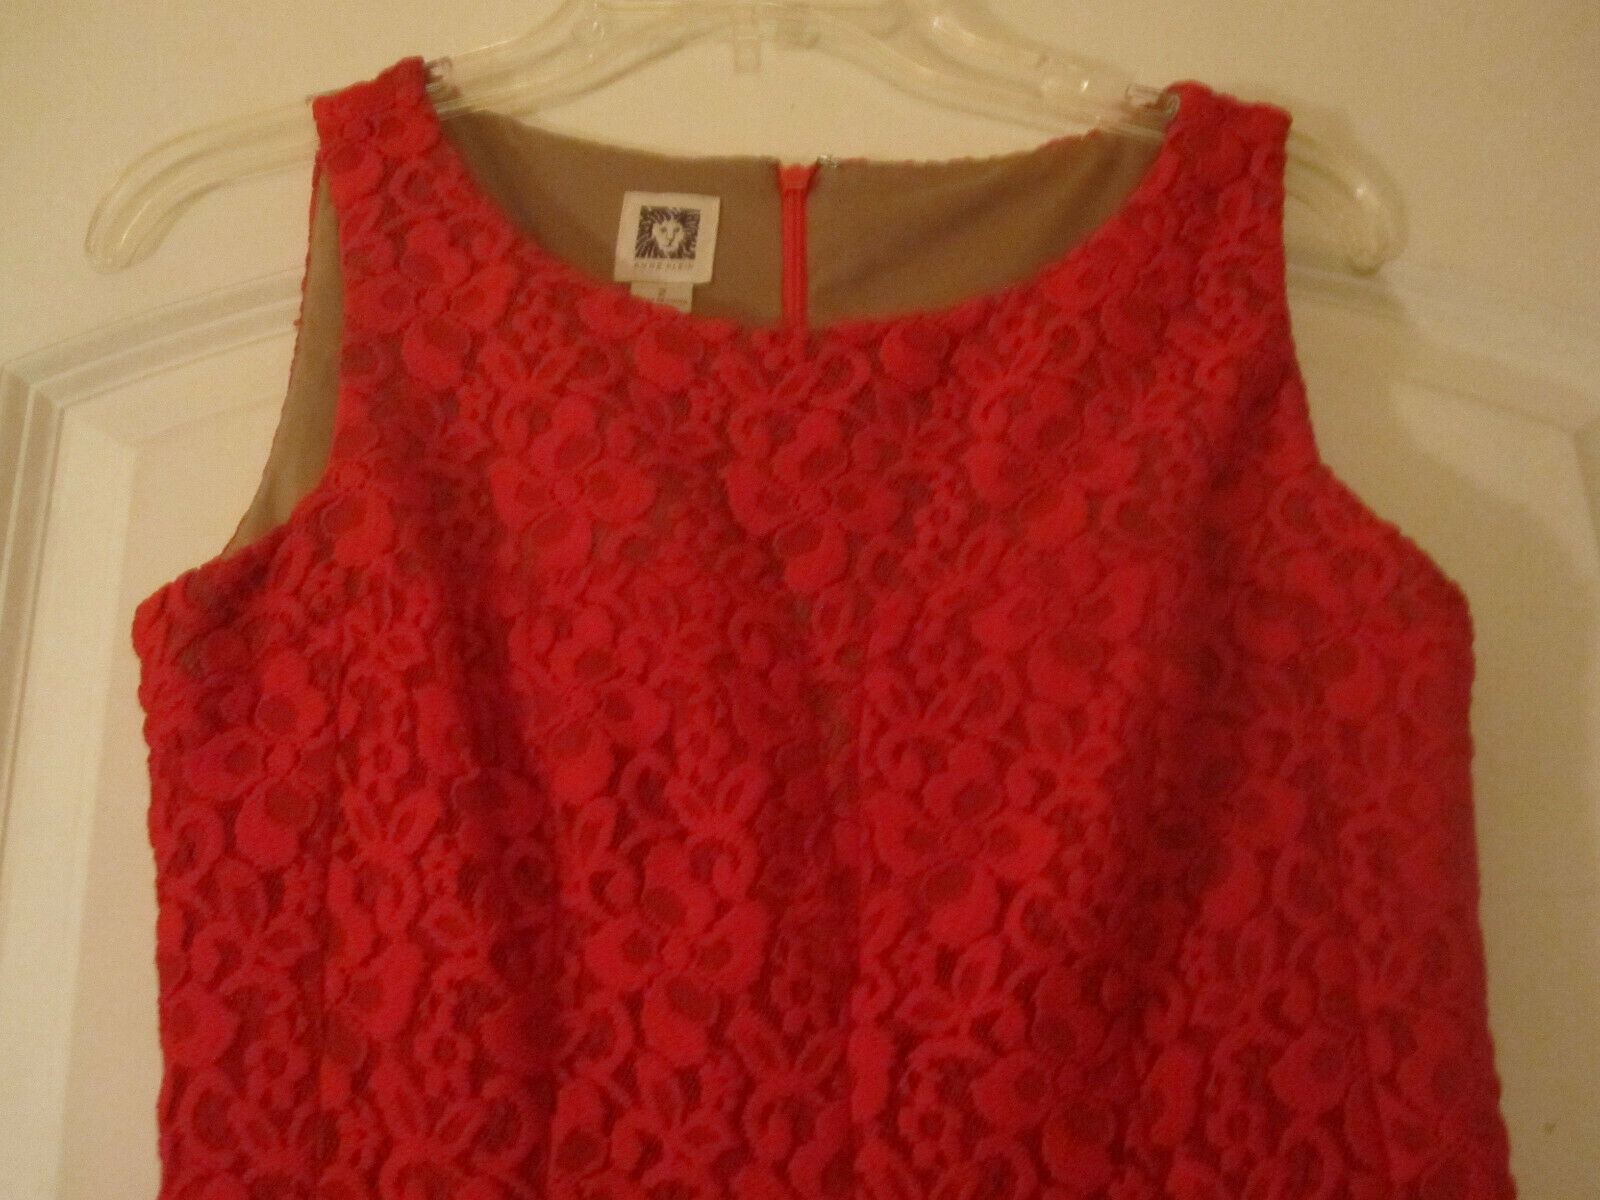 Anne Klein Womens Red Crochet Dress Lined Sleeveless Size 2 image 3